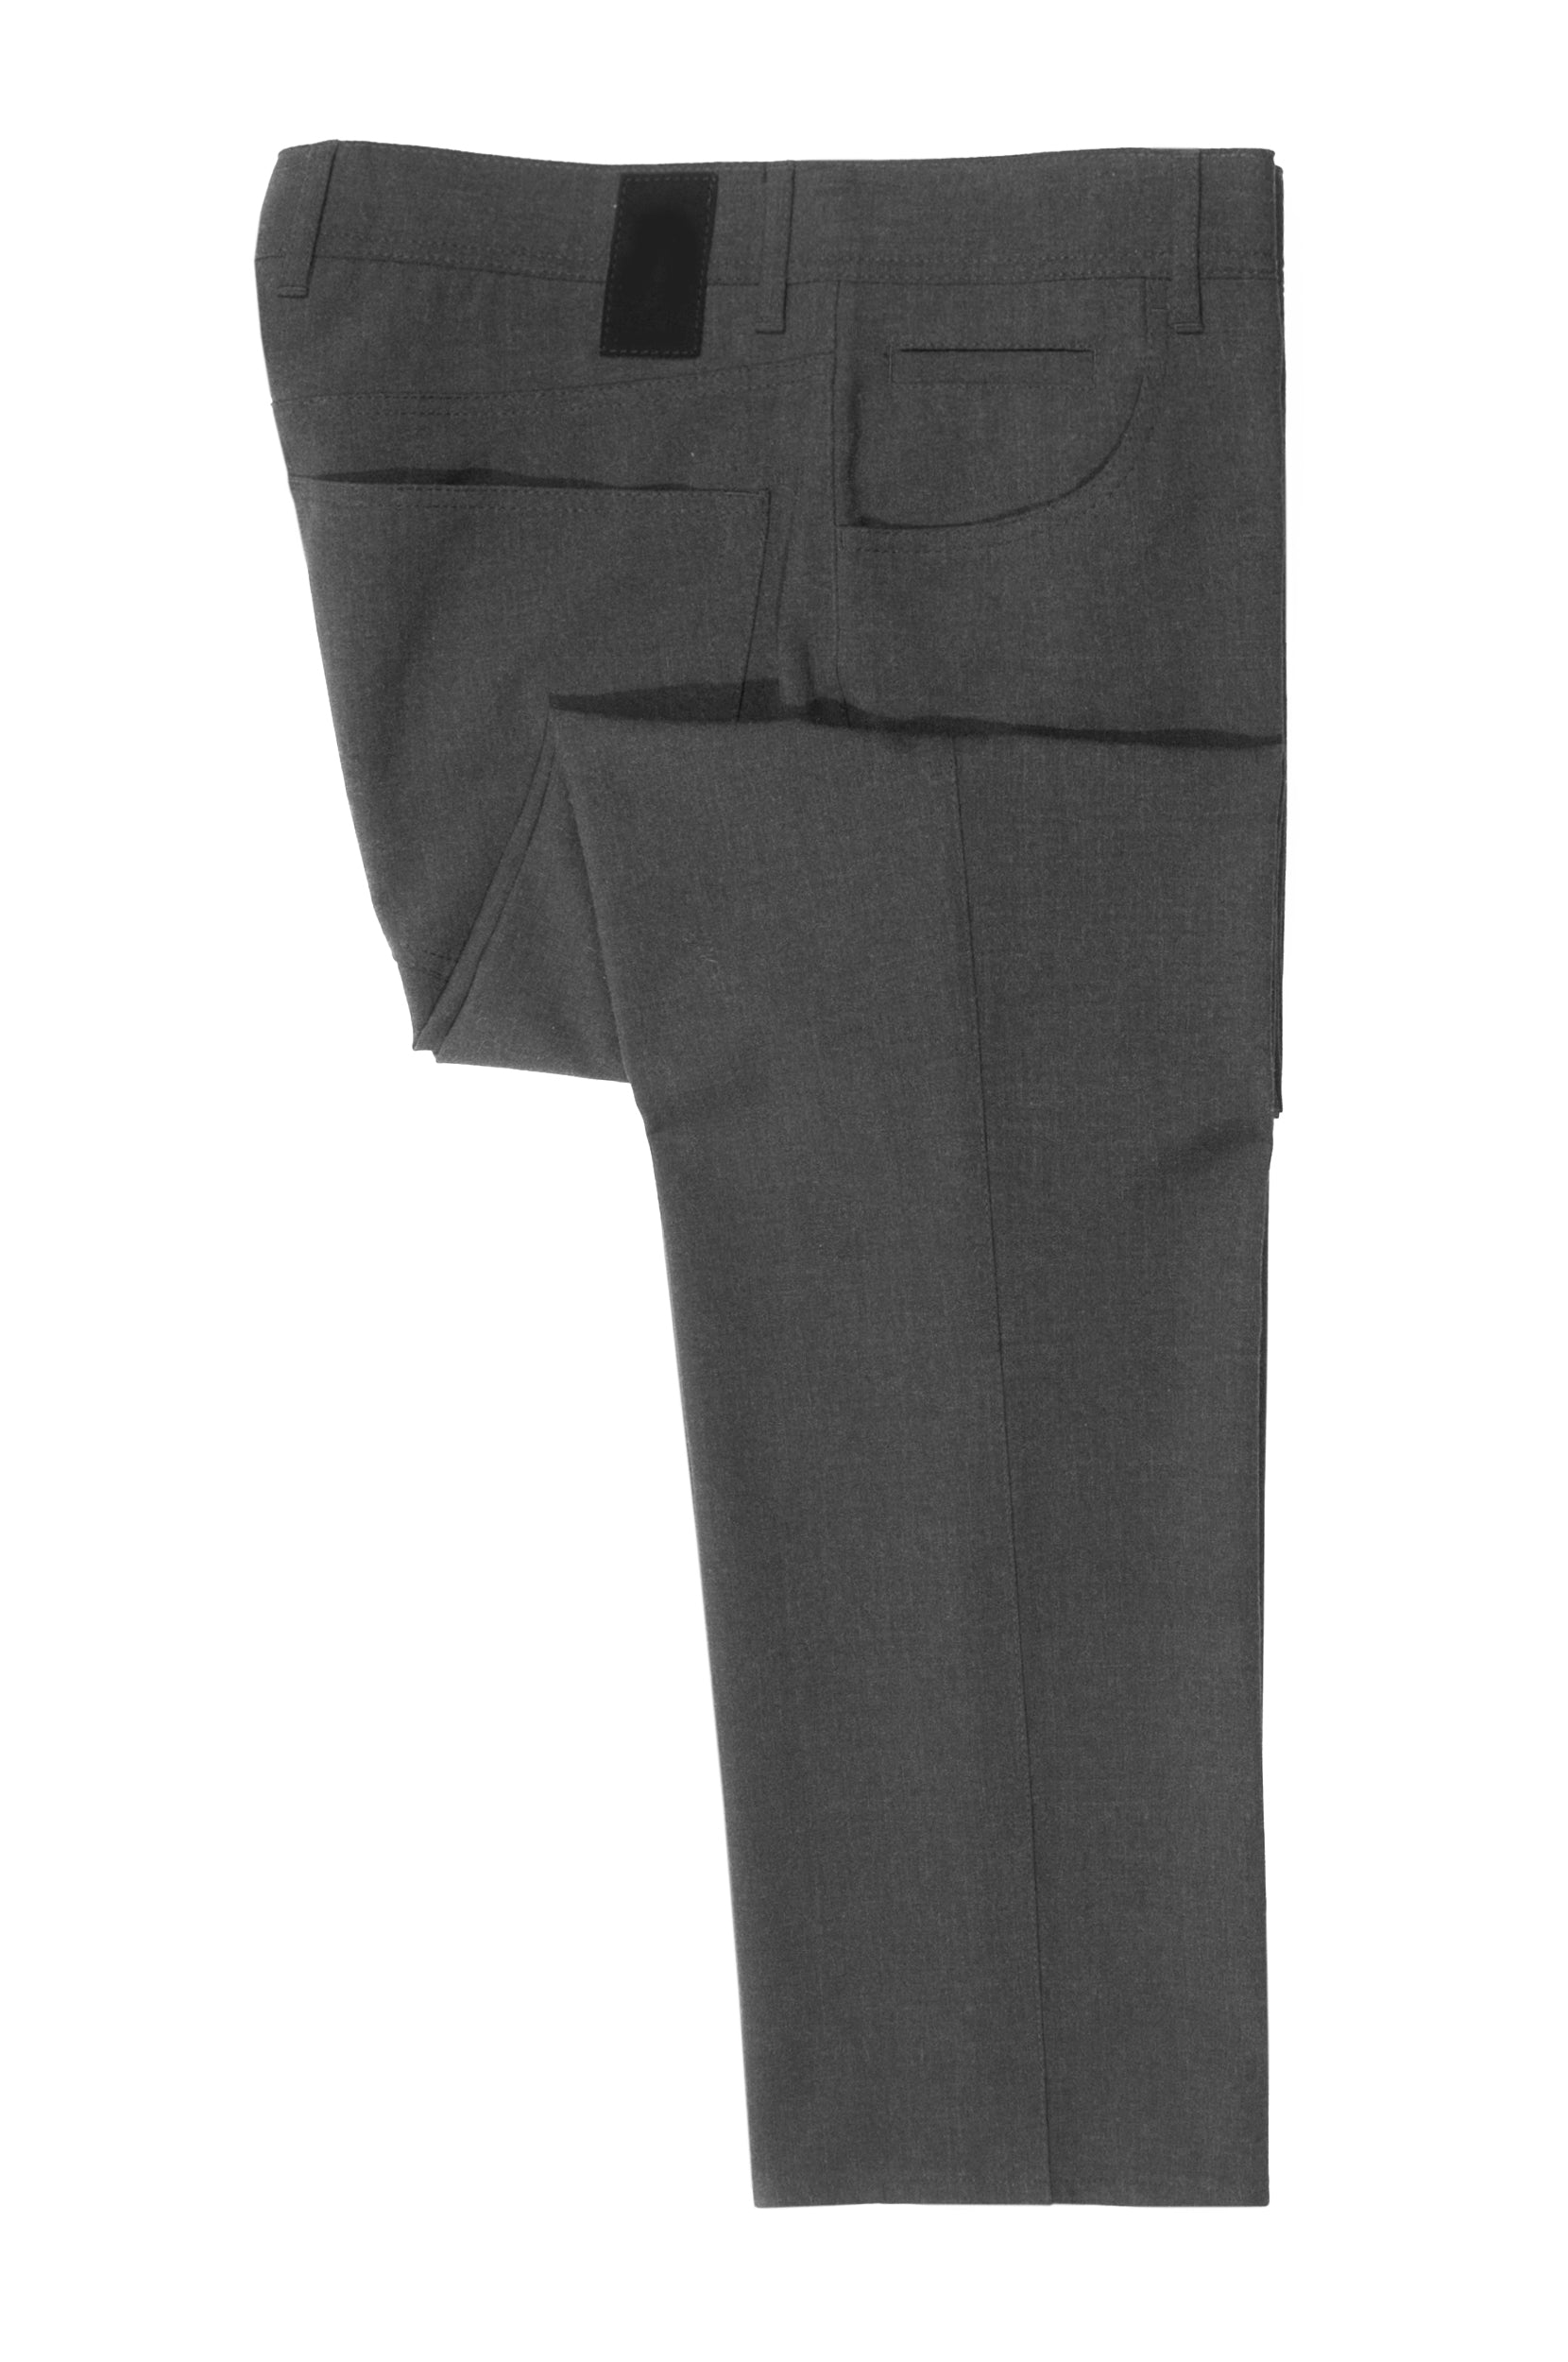 Alberto Dark Grey Stone Ceramica Modern Fit Pants for Luxmrkt.com Menswear Consignment Edmonton